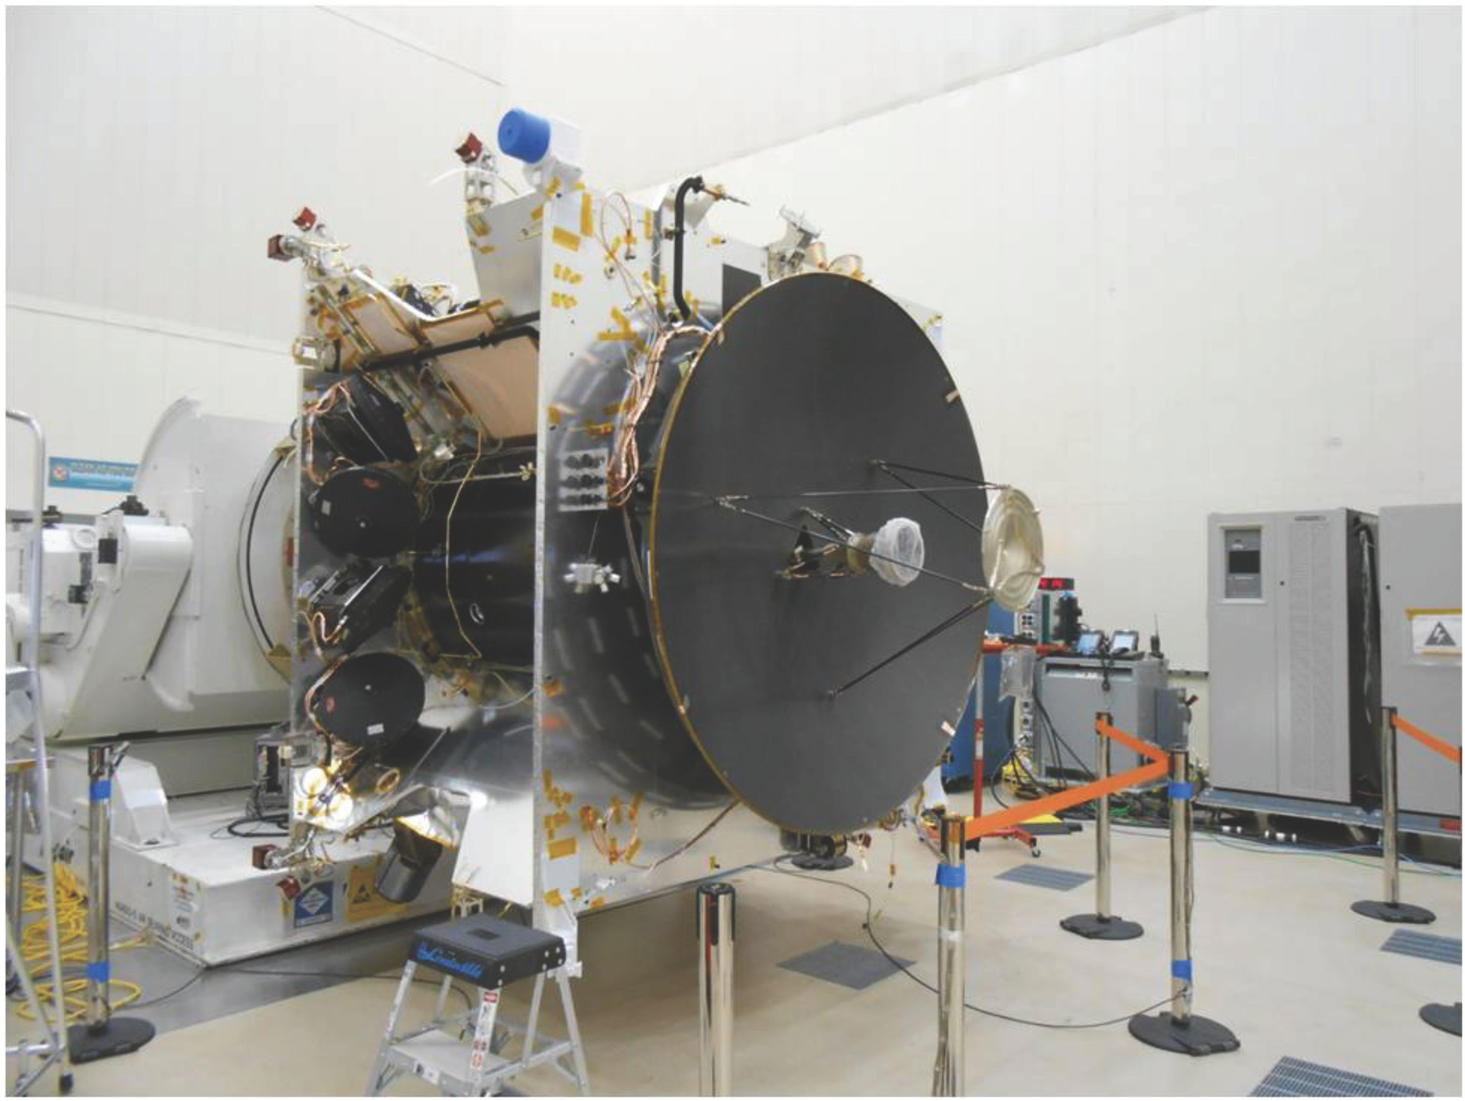 The MAVEN spacecraft in Assembly, Test, and Launch Operations phase at Lockheed Martin.